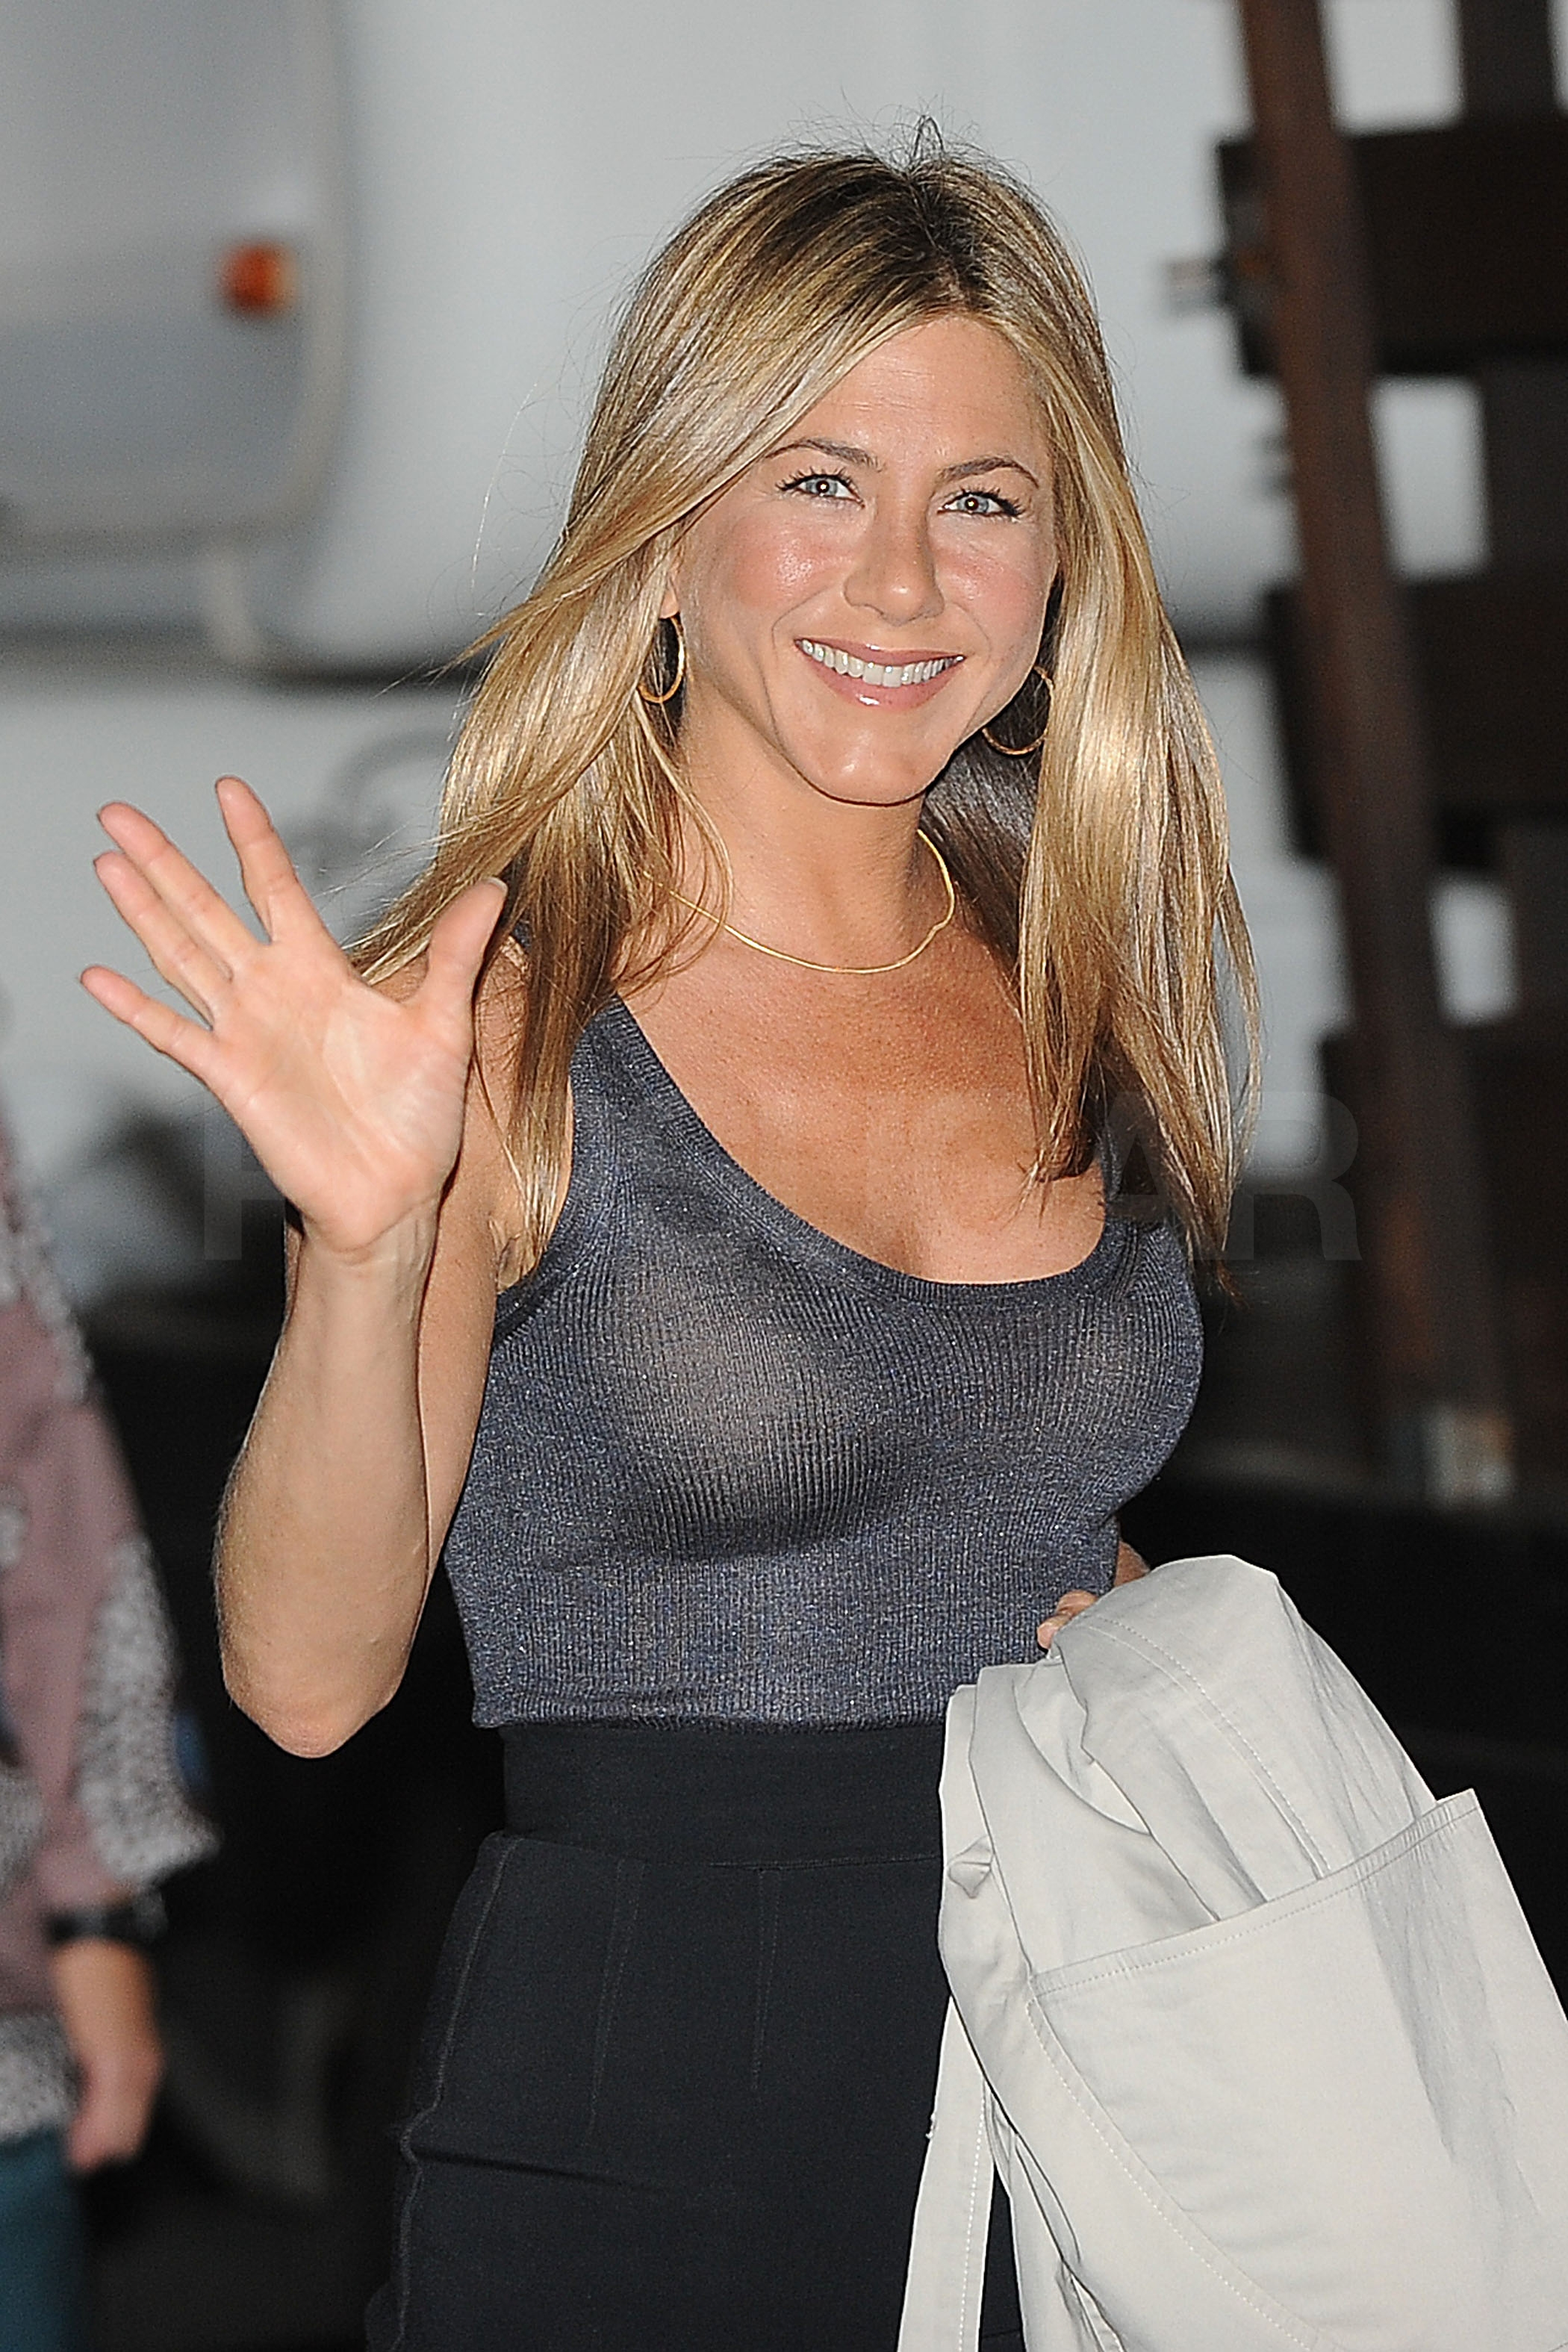 Jennifer aniston nude photos images 25